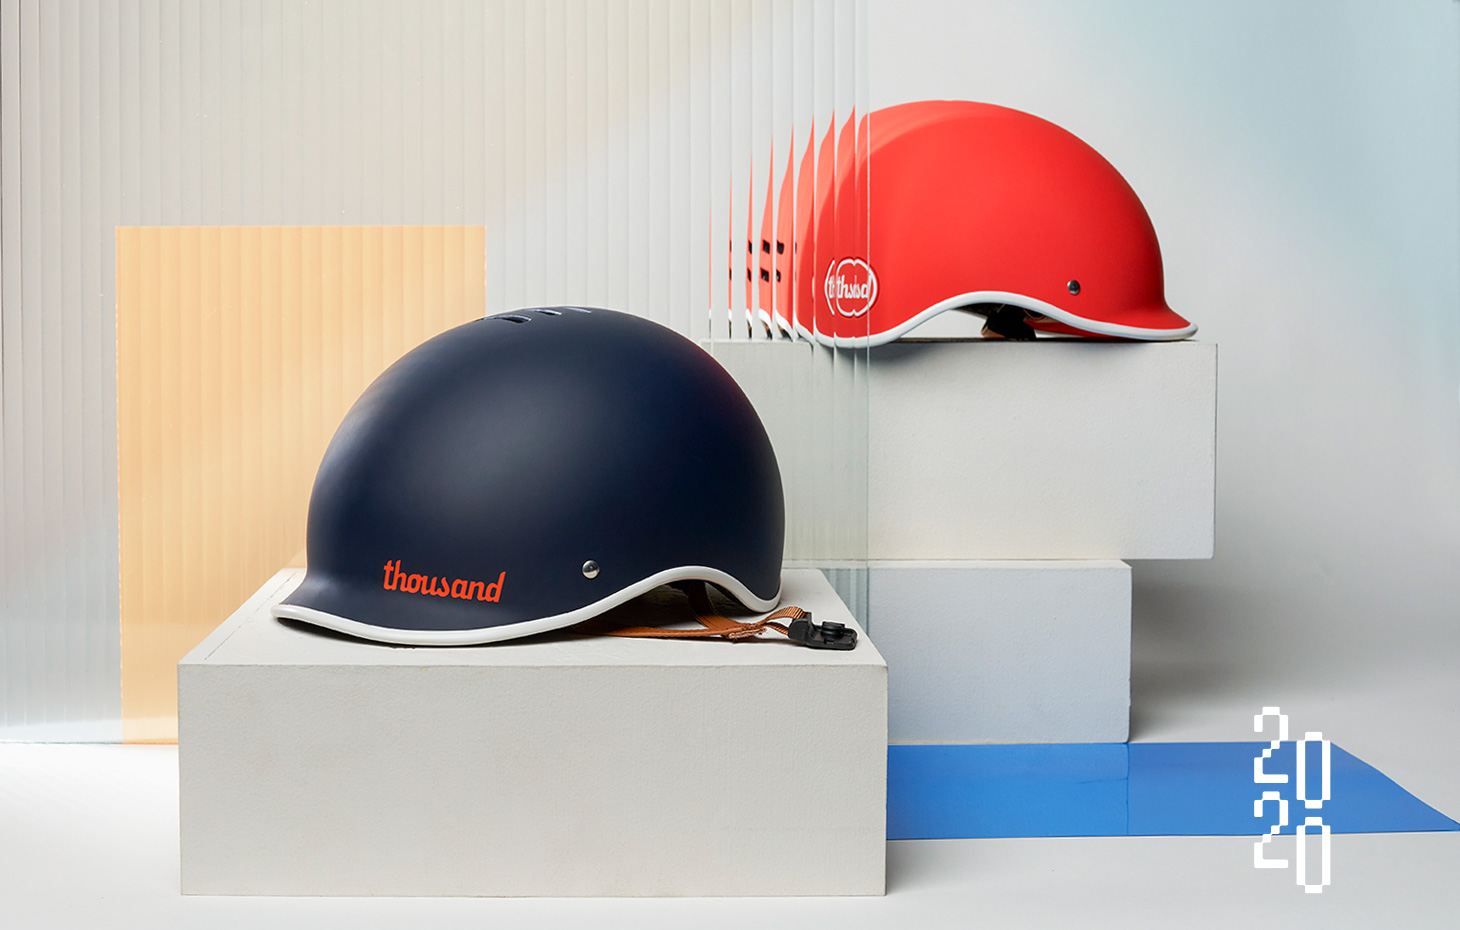 blue bike helmet and red bike helmet